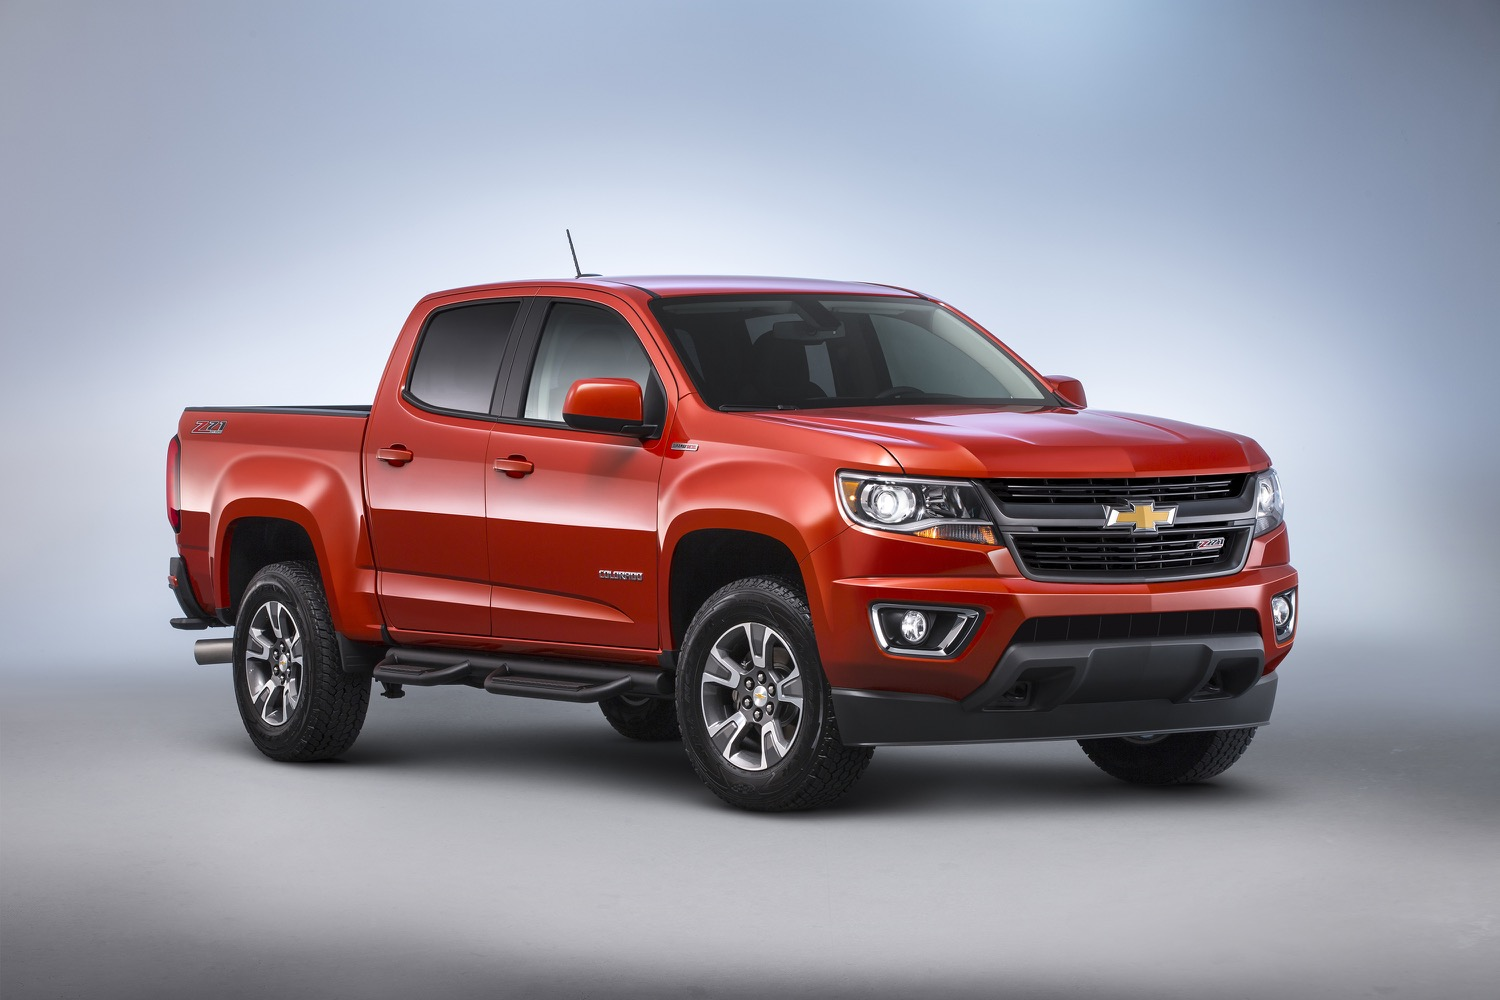 2016 chevy colorado diesel pickup priced at 31 700 fuel efficiency to come later. Black Bedroom Furniture Sets. Home Design Ideas